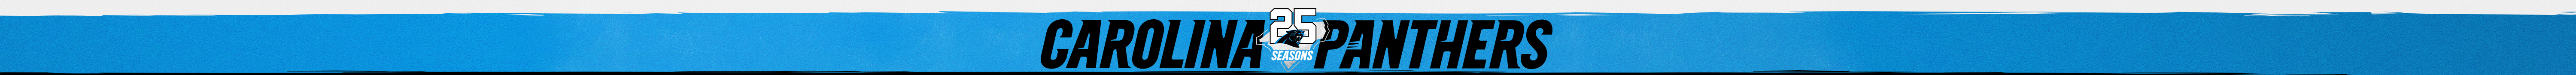 Carolina Panthers Schedule 2020.Panthers Schedule Carolina Panthers Panthers Com